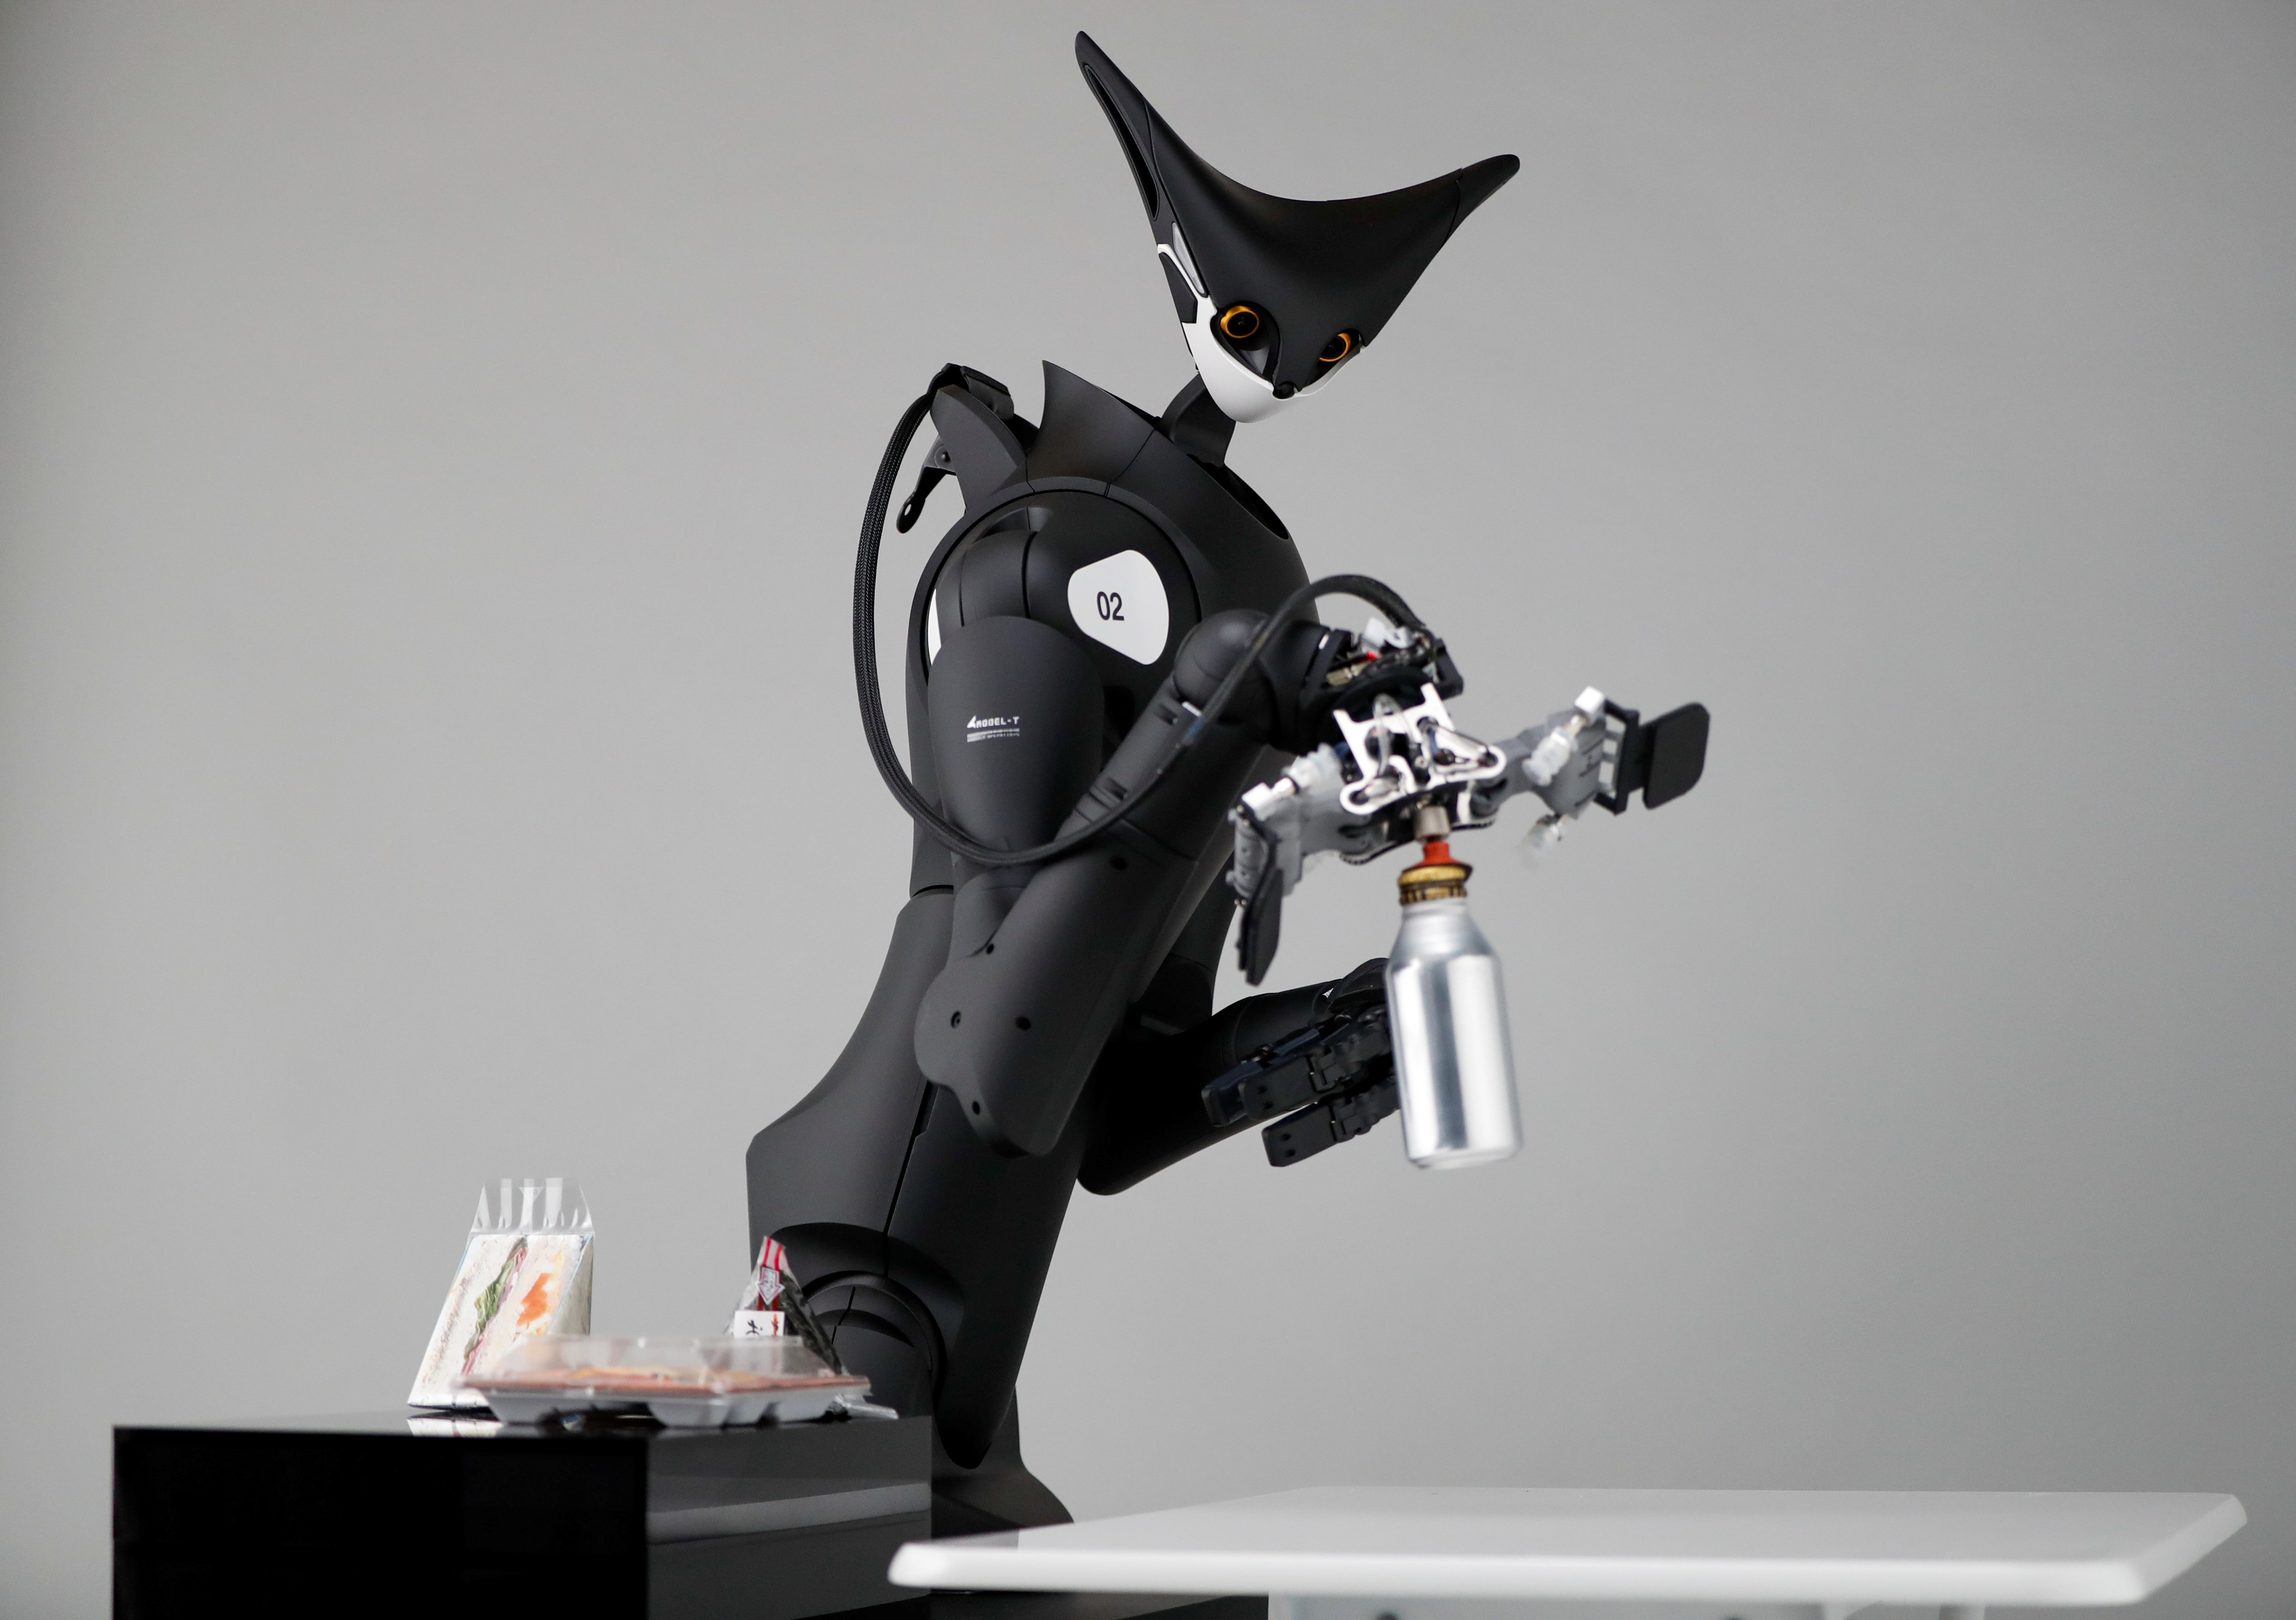 Image of Telexistence's shelf-stacking avatar robot, designed to resemble a kangaroo and developed to work in a convenience store